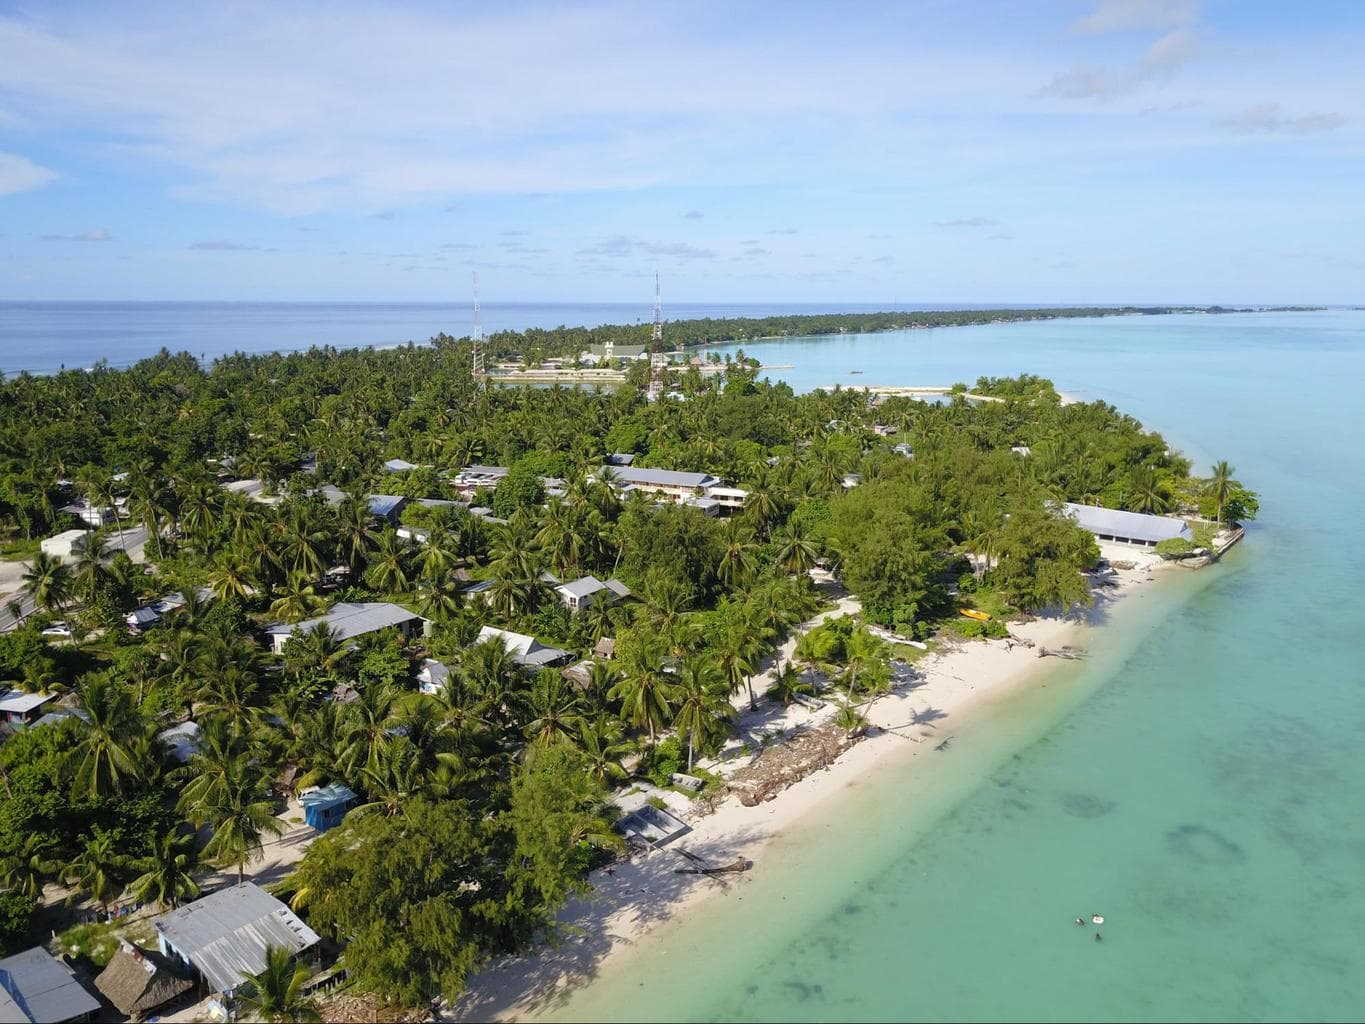 Clear skies in Kiribati's dry season